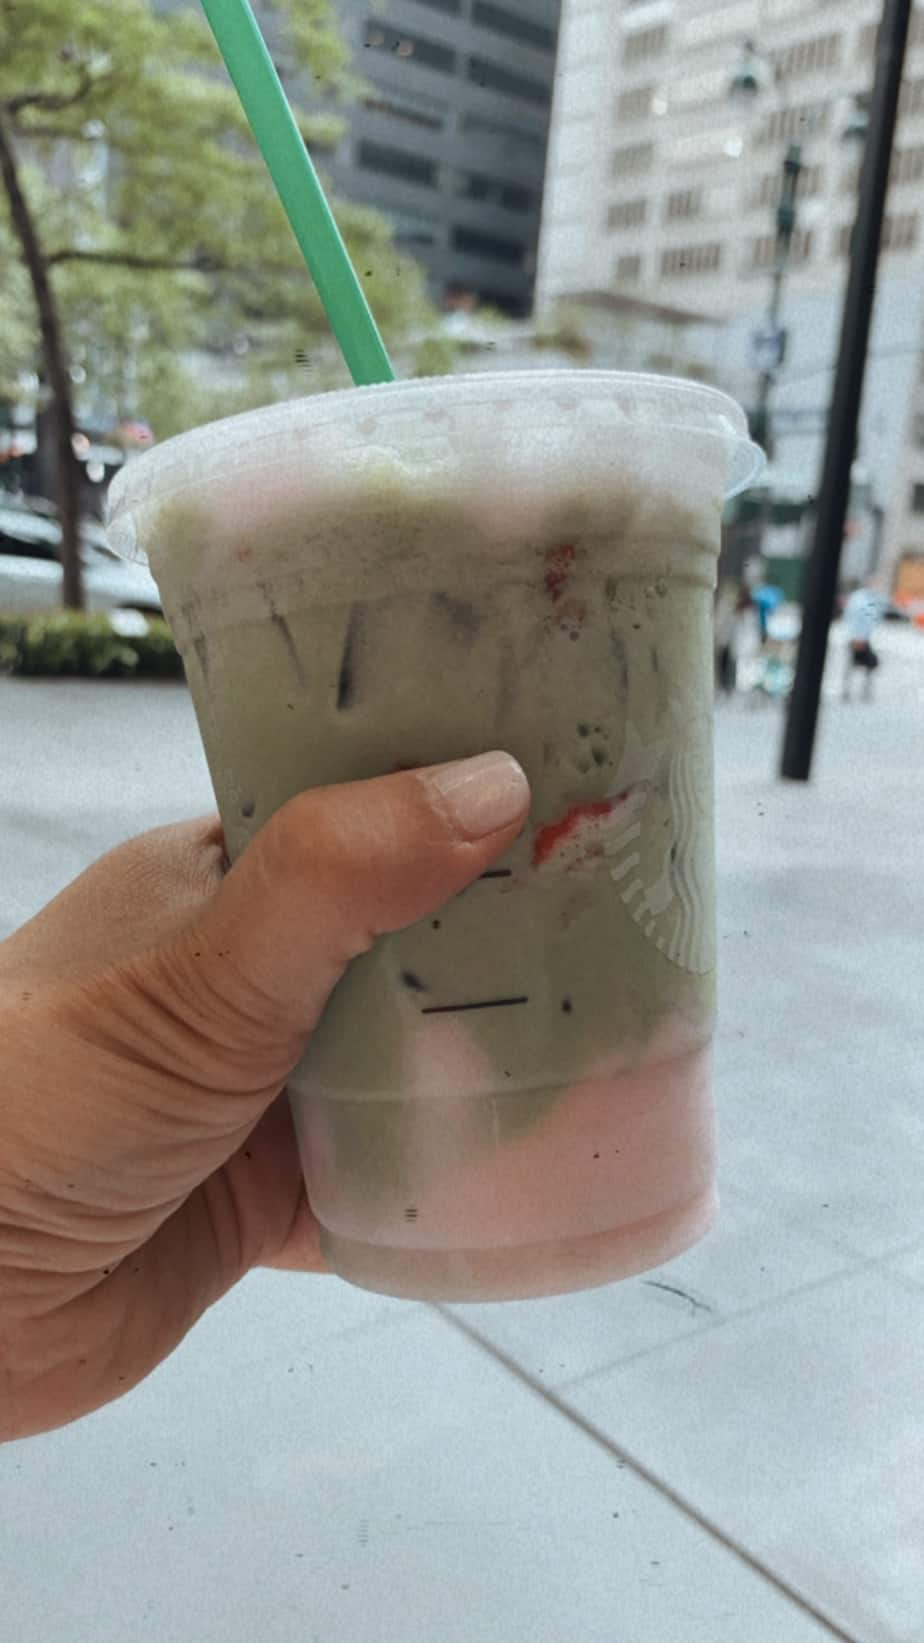 pink drink with matcha foam from starbucks